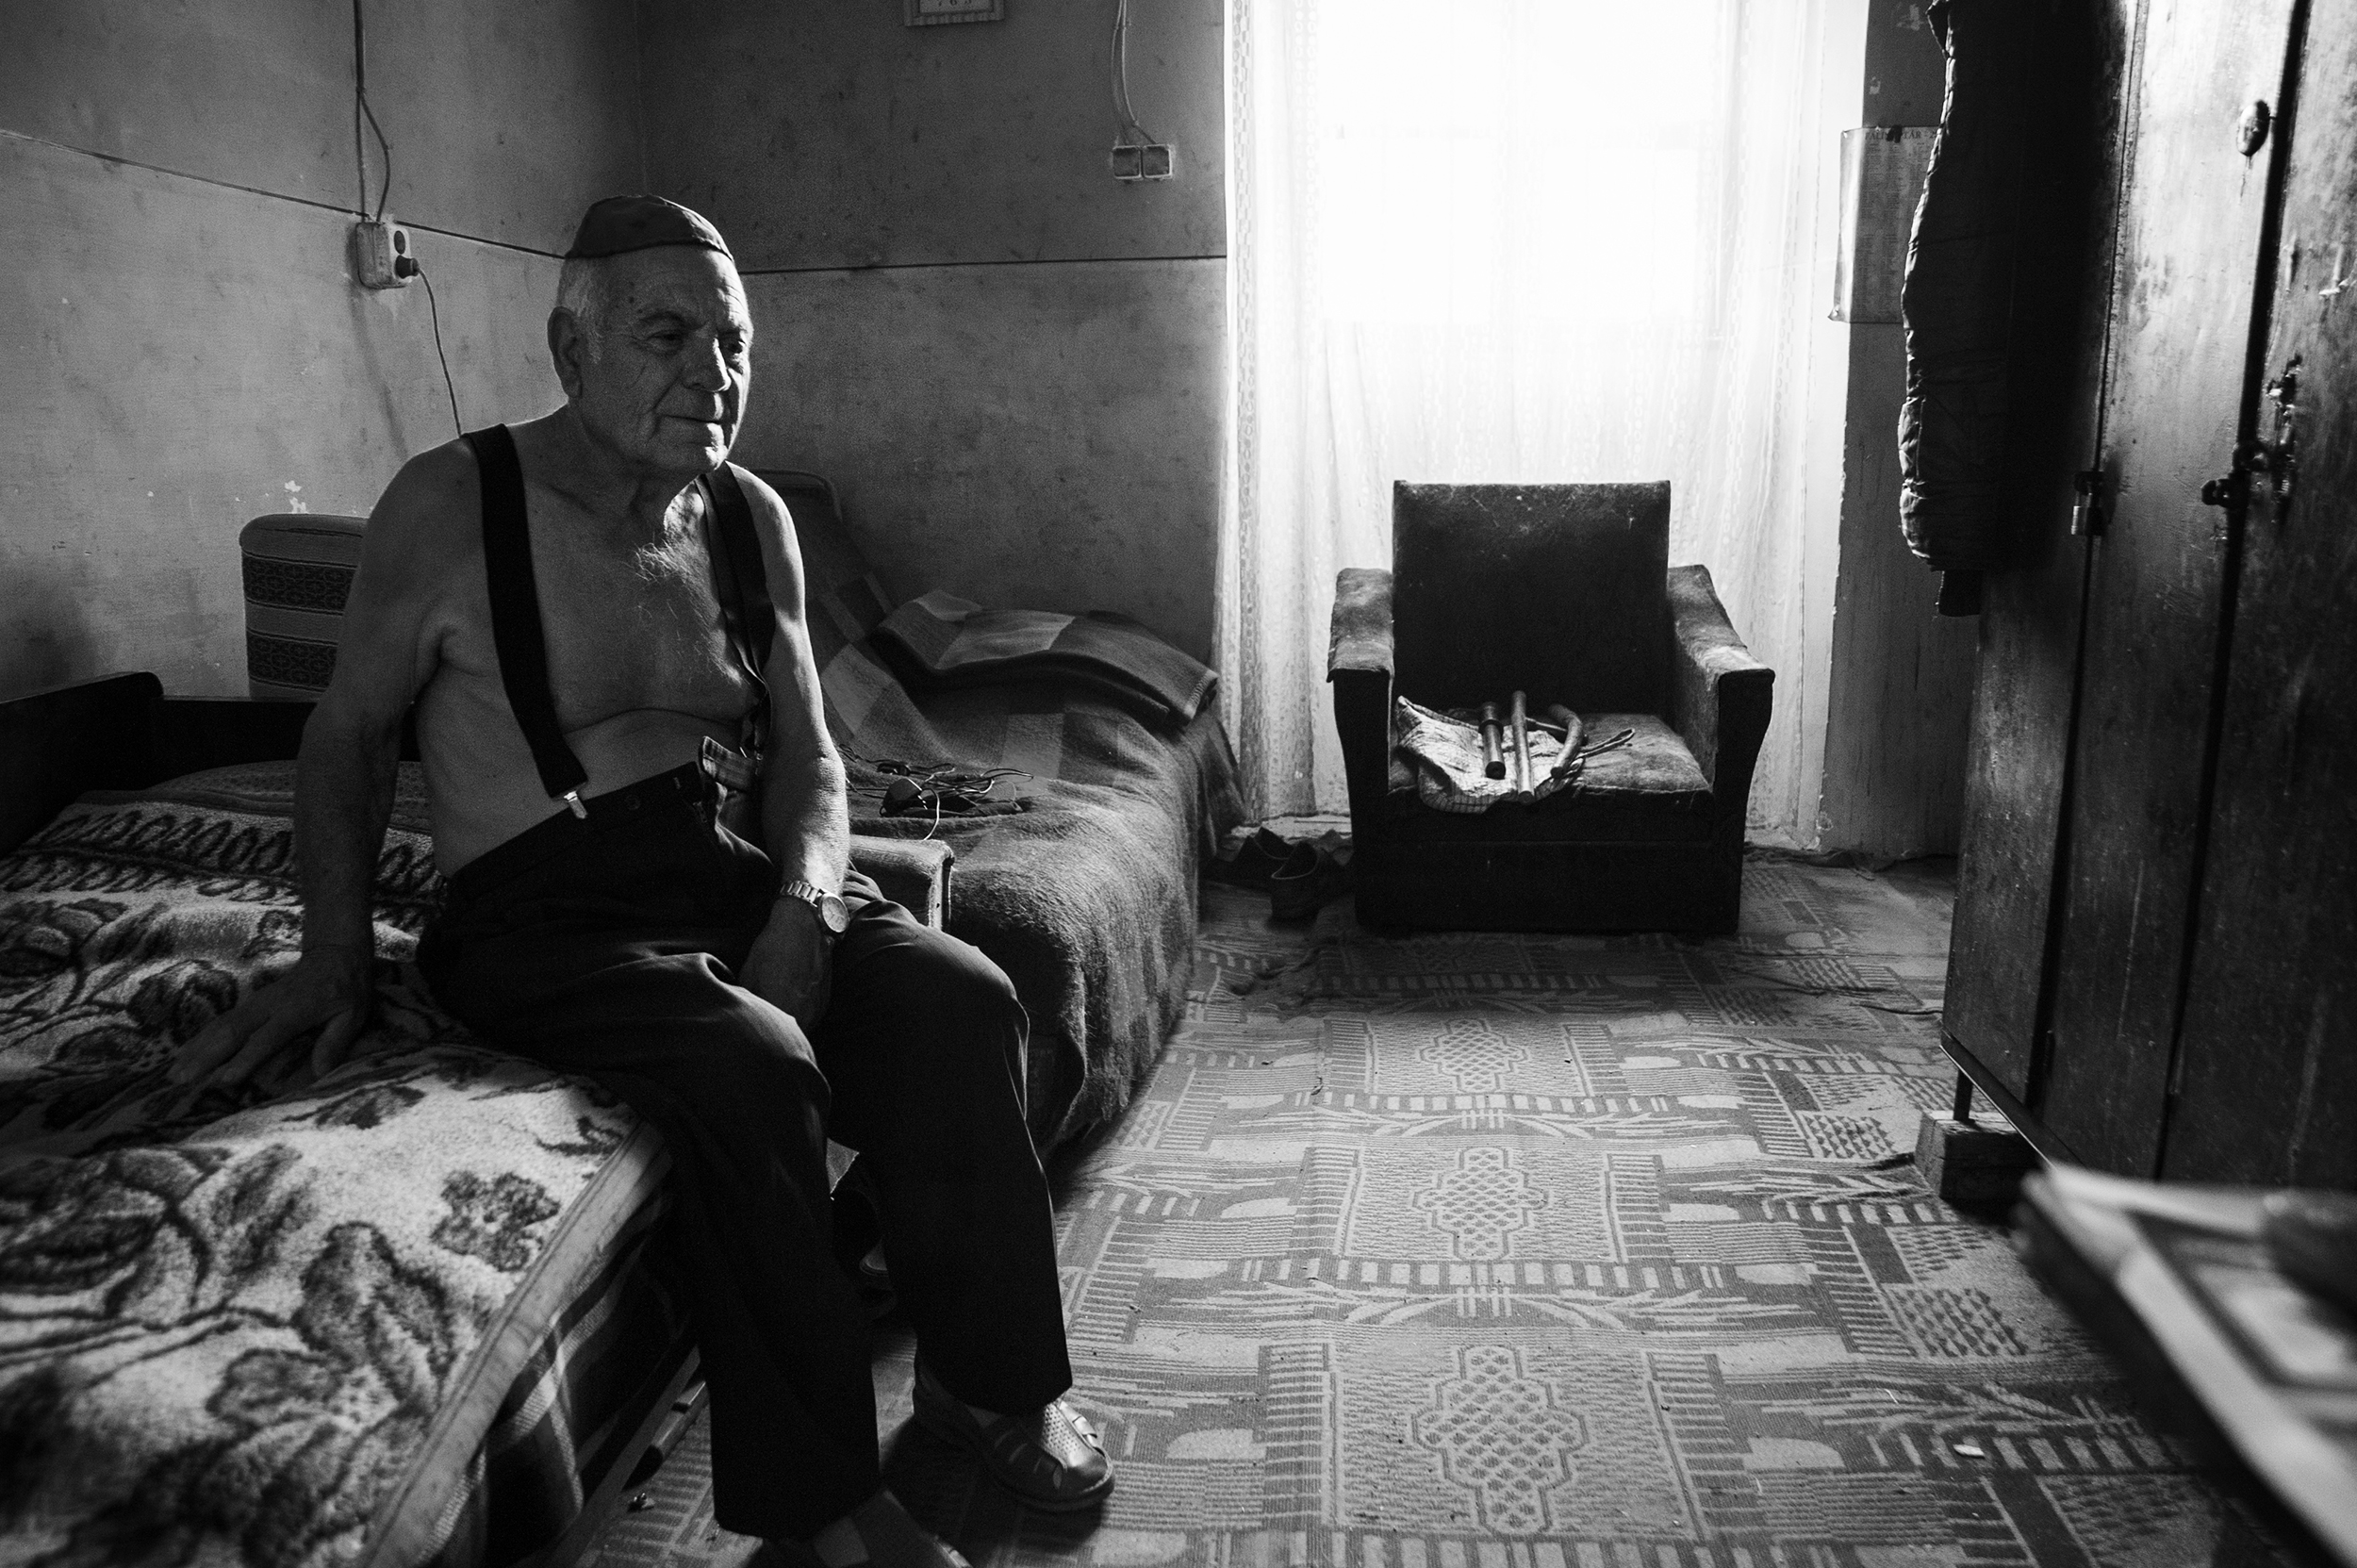 Alexandru Kepes, 79, a survivor of the Holocaust, sits in his small apartment in the back of the empty Zion Neologic Synagogue keeping watch of the sanctuary and scaring away any would-be vandals on August 19, 2013.